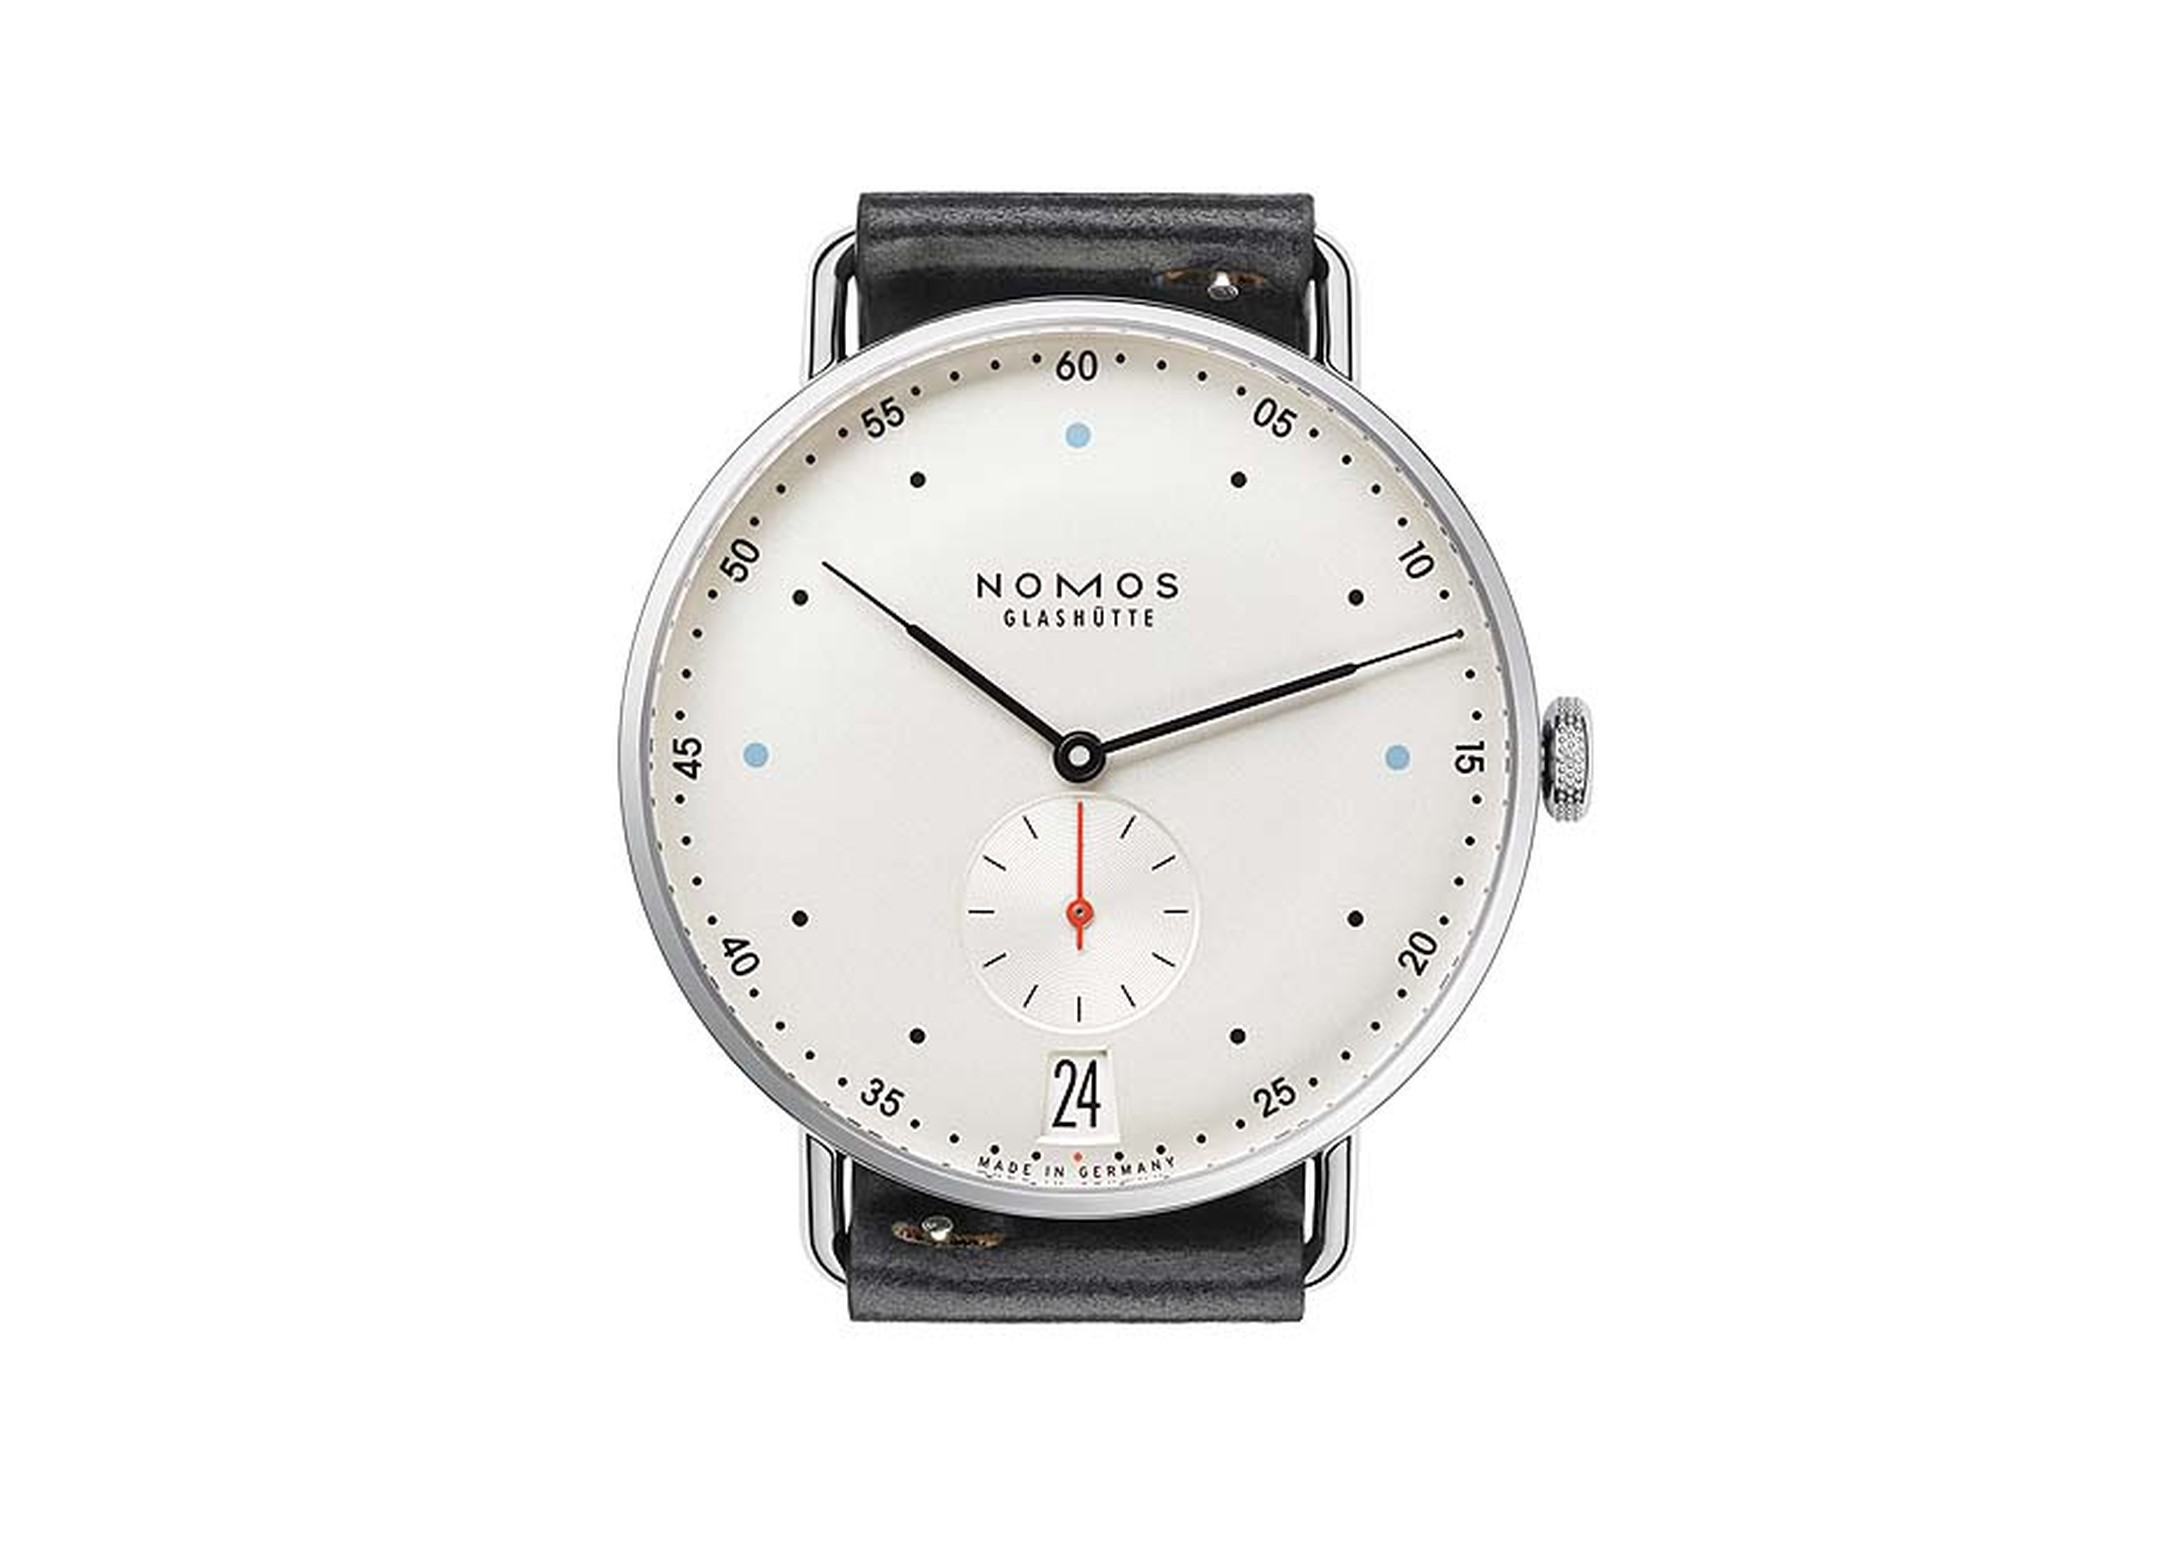 The award-winning Nomos Glashütte Metro watch is back this year with a larger case size of 38.5mm and the elimination of the mint green and red circular power reserve symbol on the dial (£2,200).